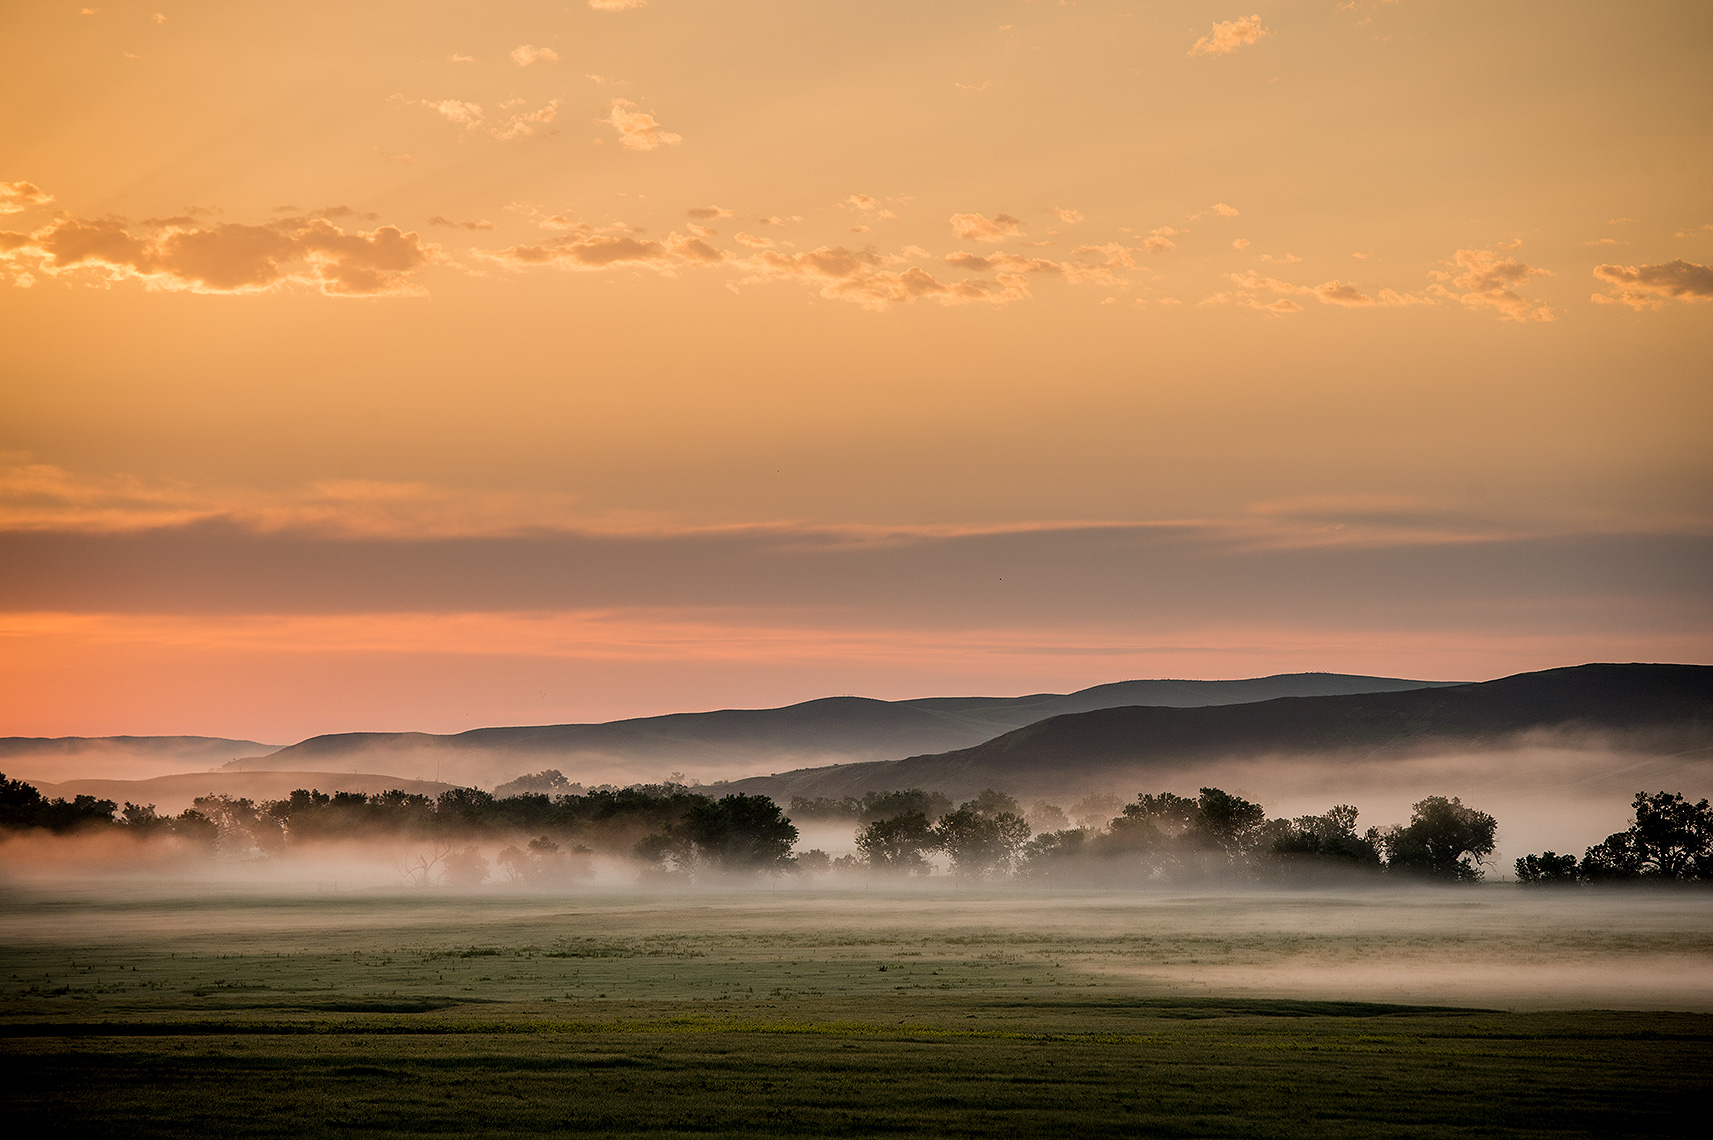 Morning Fog on Great Plains Photo